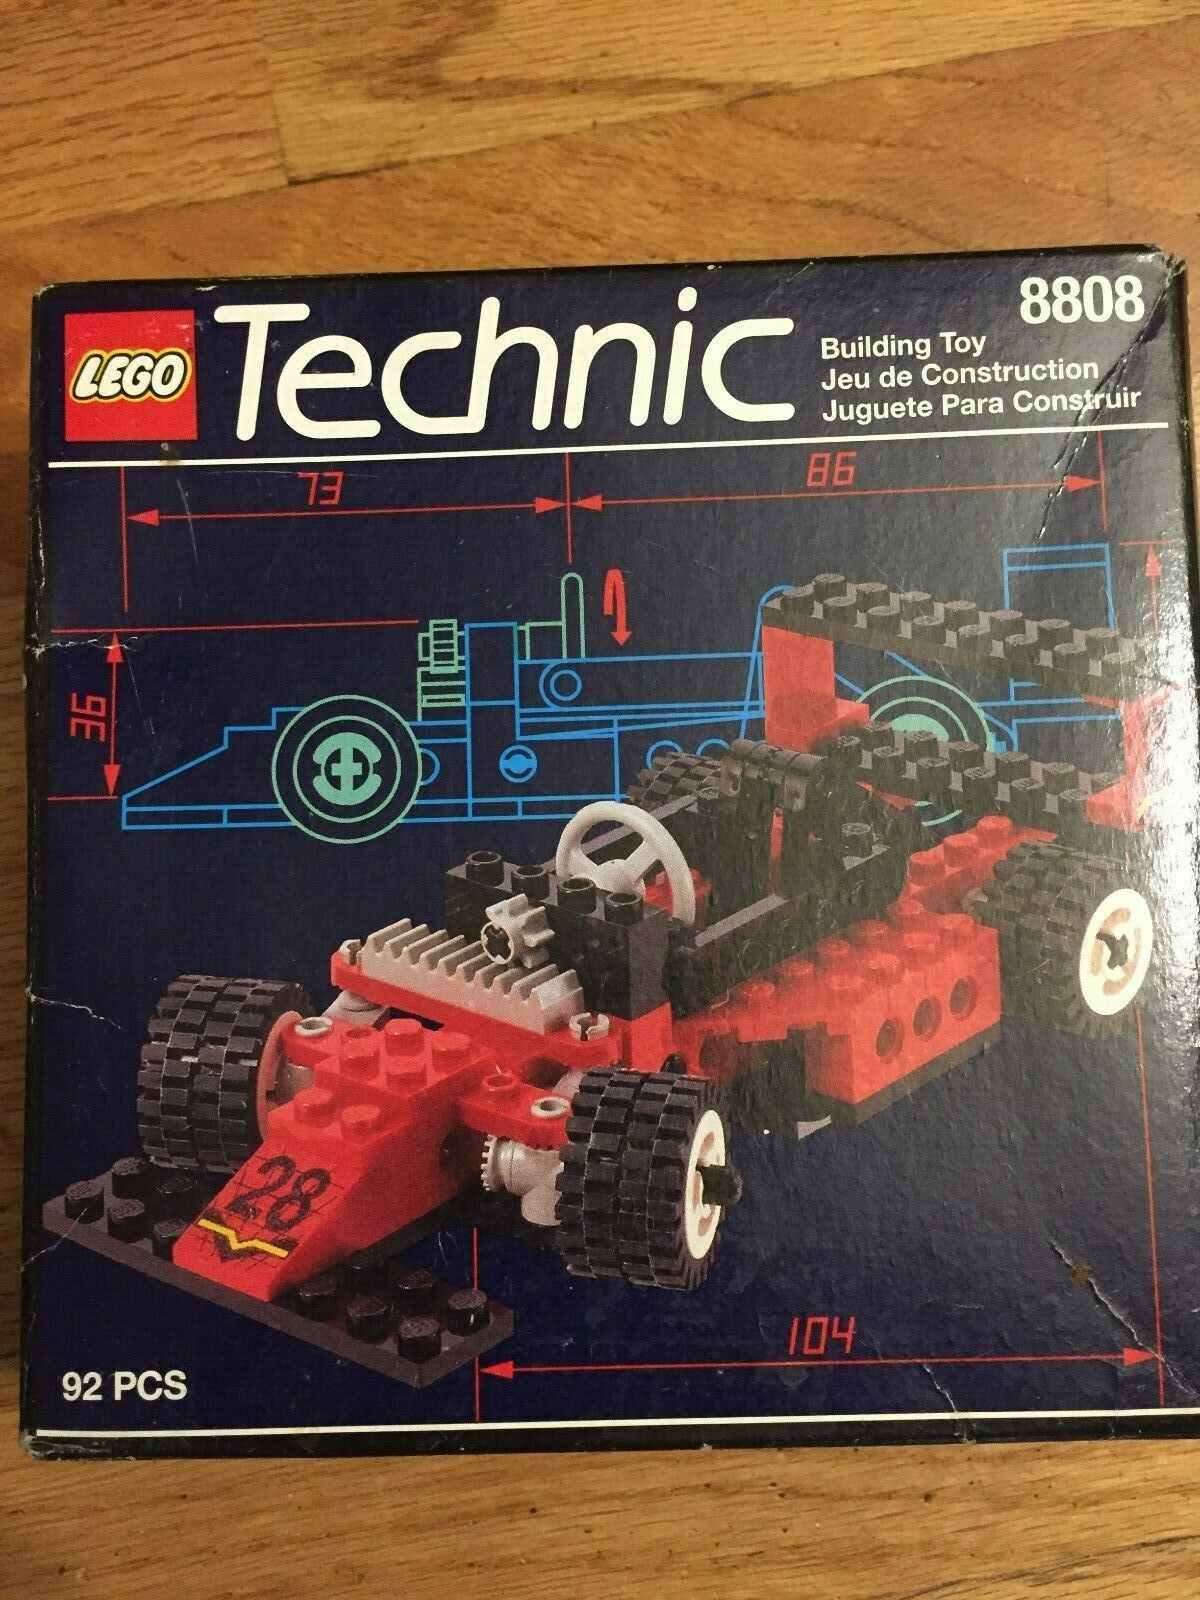 nuovo Lego Technic   8808 F1 Racer  Vintage Year 1994 Sealed Mint Cond.  consegna veloce